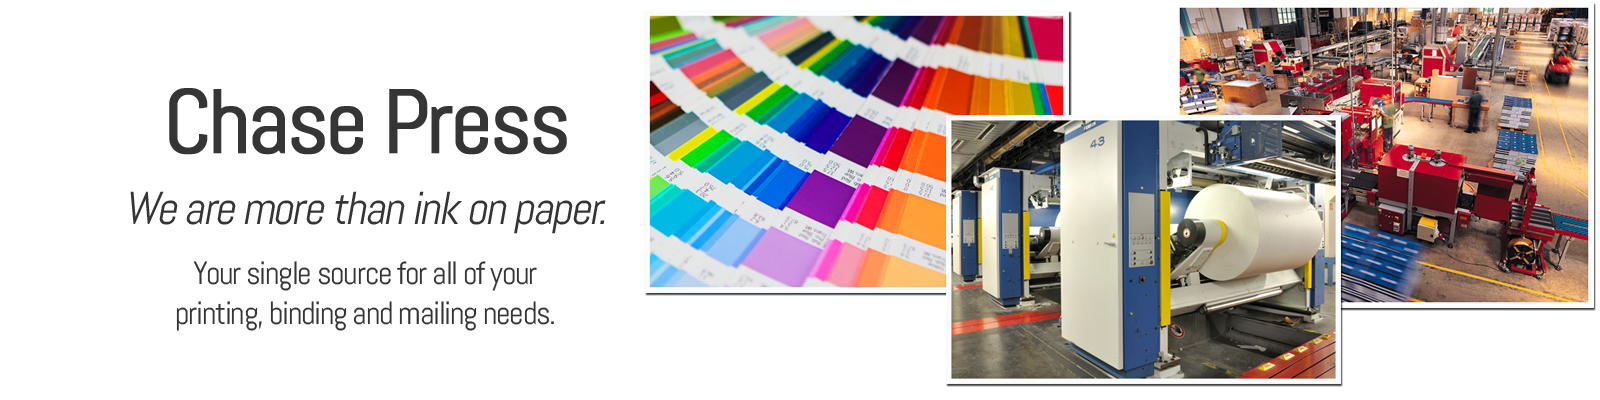 Offline and online digital offset printing press products and services. Yorktown Heights, NY 10598